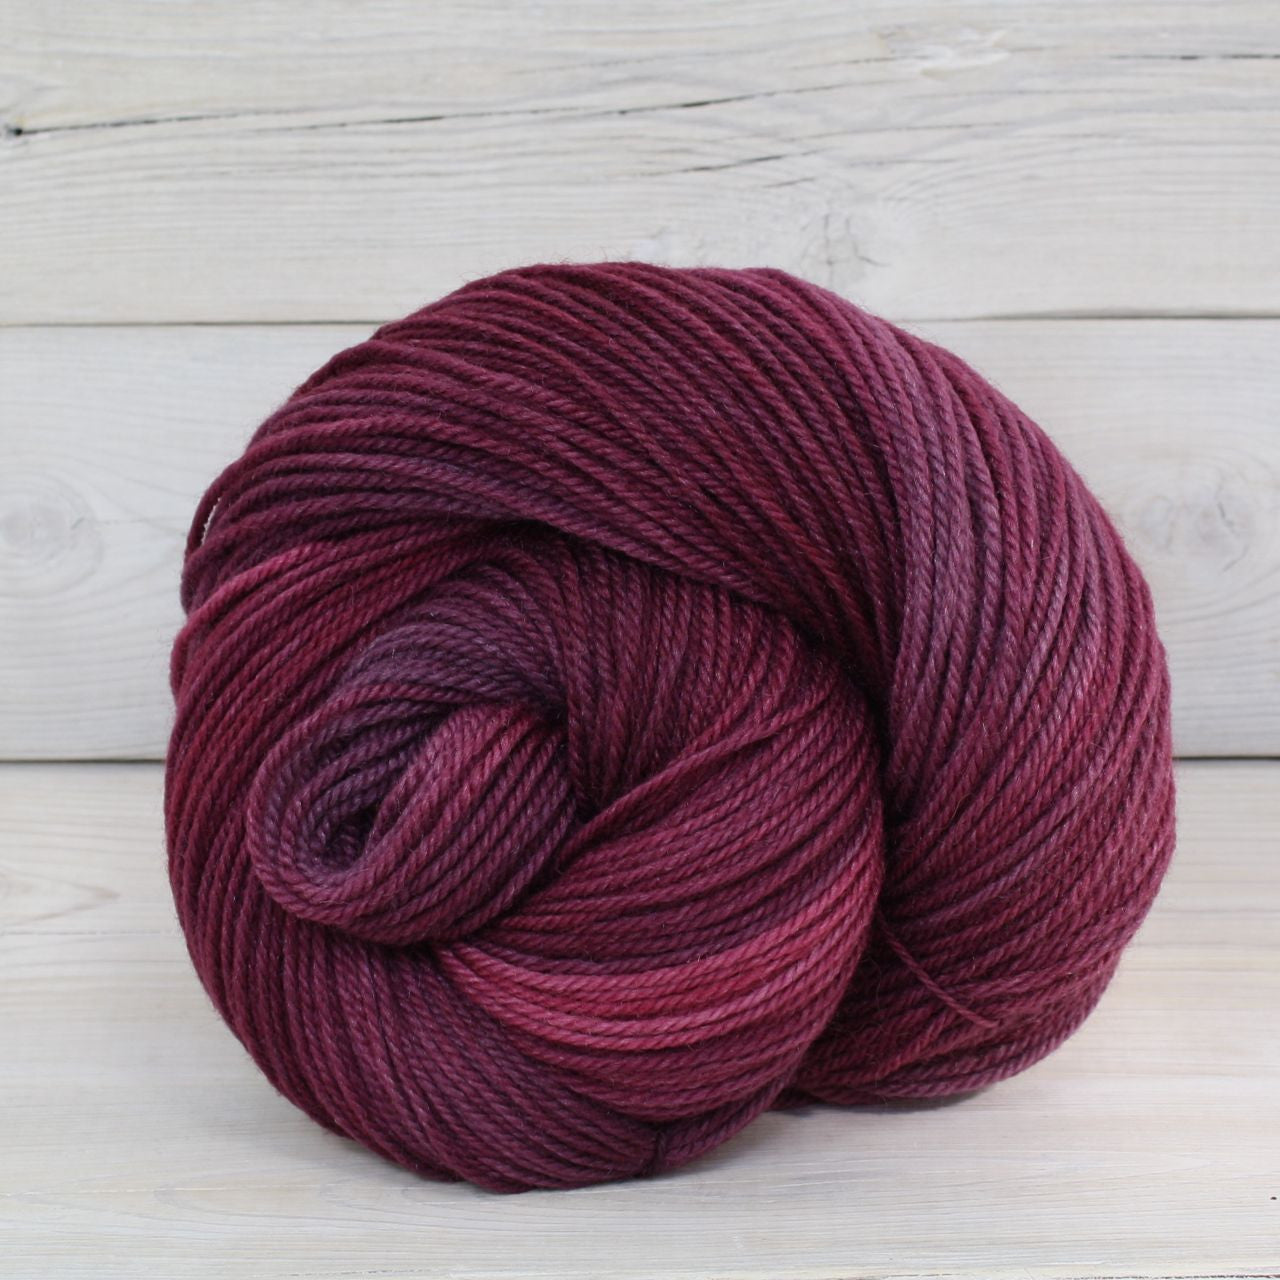 Luna Grey Fiber Arts Zeta Yarn | Colorway: Sugar Plum